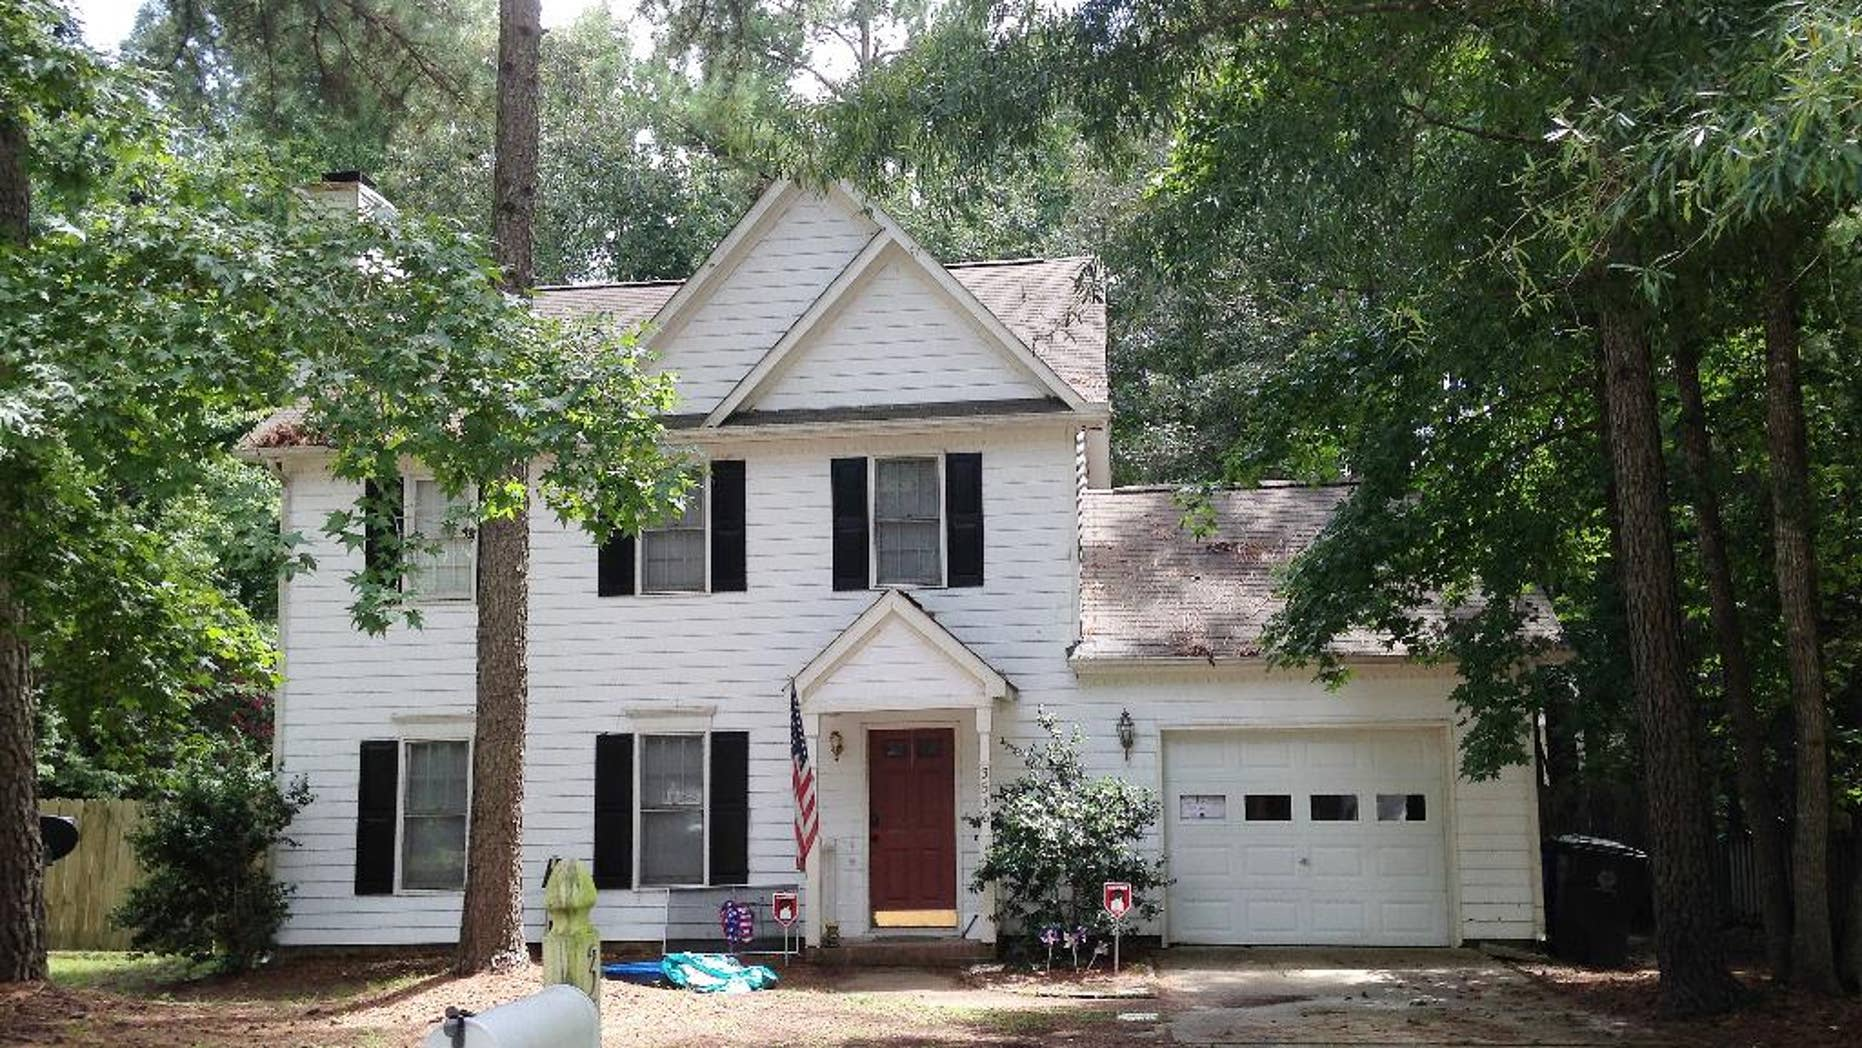 The home of Raleigh shooting suspect 39-year-old Chad Cameron Copley is seen Tuesday, Aug. 9, 2016, in Raleigh, N.C. Police say Copley fired a shotgun from inside his garage and fatally struck a 20-year-old black man. Witnesses say the body lay close to a mailbox. (AP Photo/Jonathan Drew)